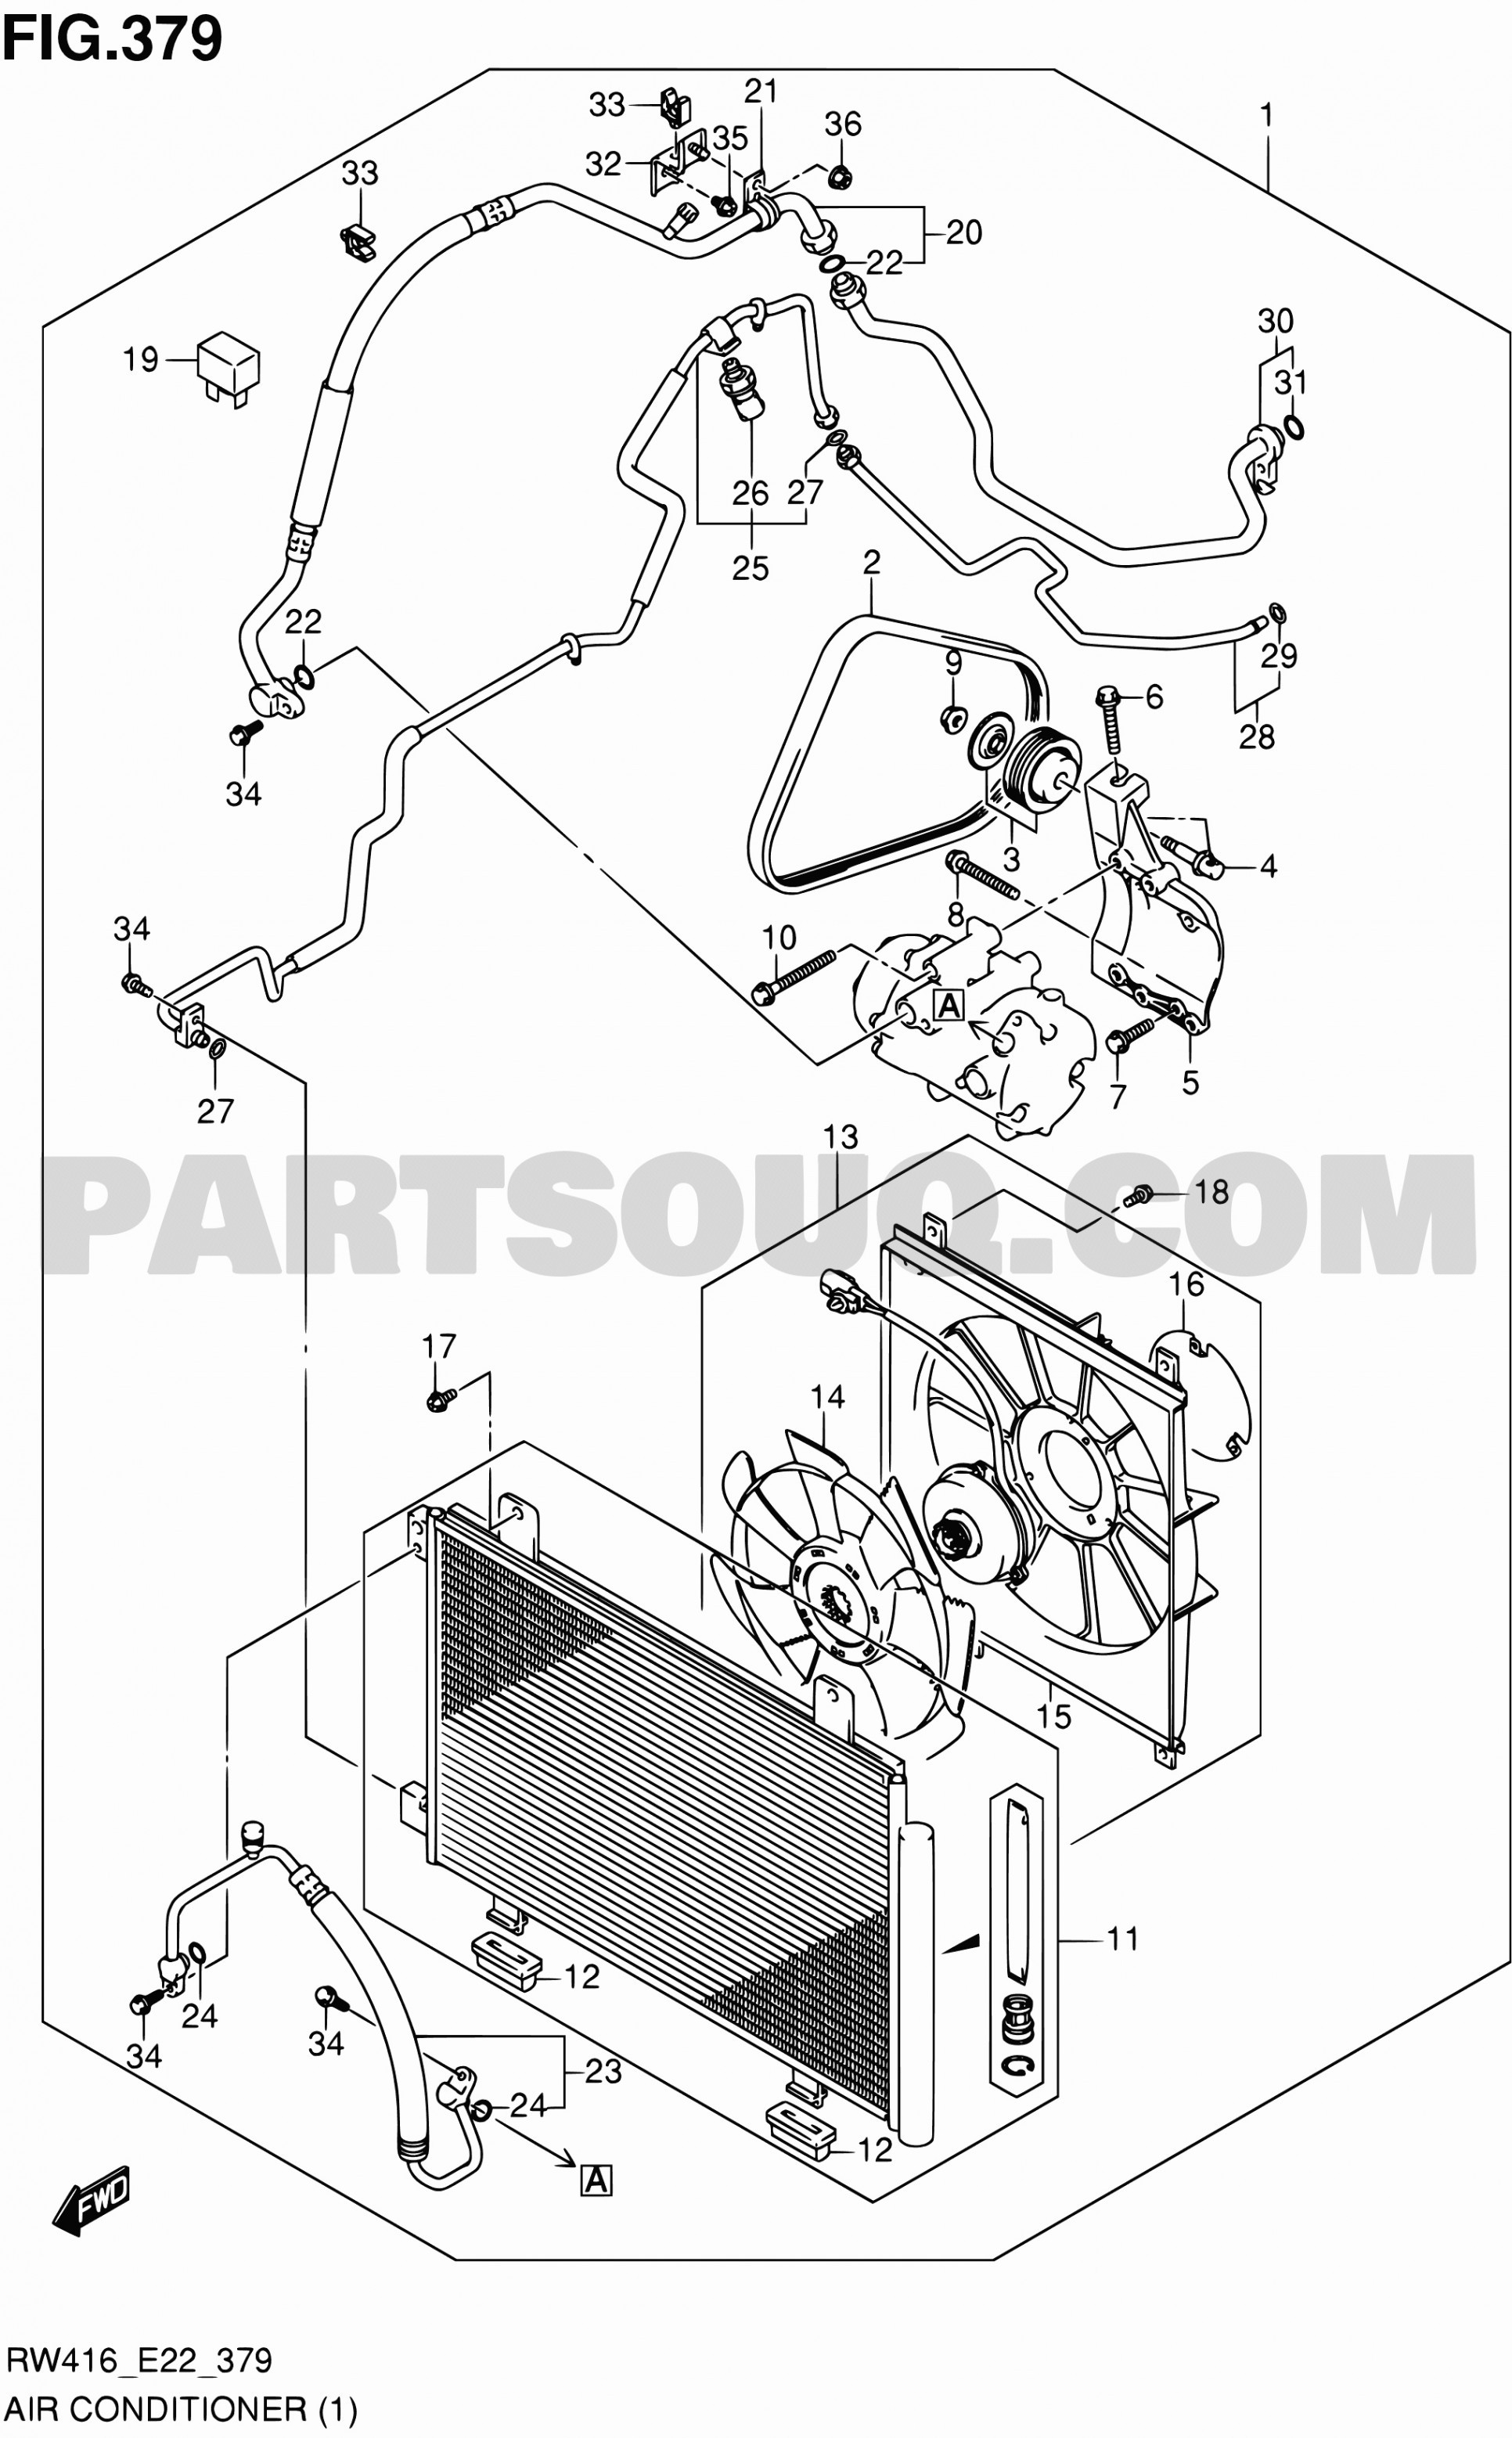 Car Parts Diagram Interior Mercedes Benz Parts Diagram – attractive Car Body Parts Diagram Of Car Parts Diagram Interior Mercedes Benz Parts Diagram – Car Parts Diagram New Interior Car